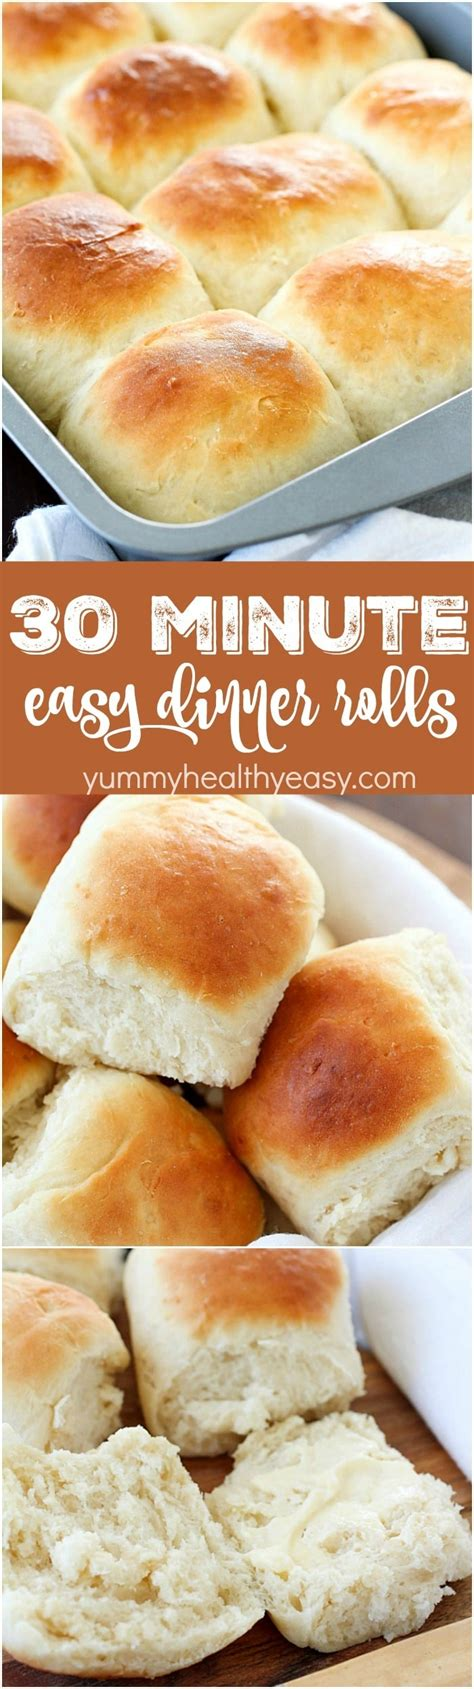 30 delicious grilled recipes the only cookbook you ll need for all your grilling desires books 30 minute easy dinner rolls small batch healthy easy